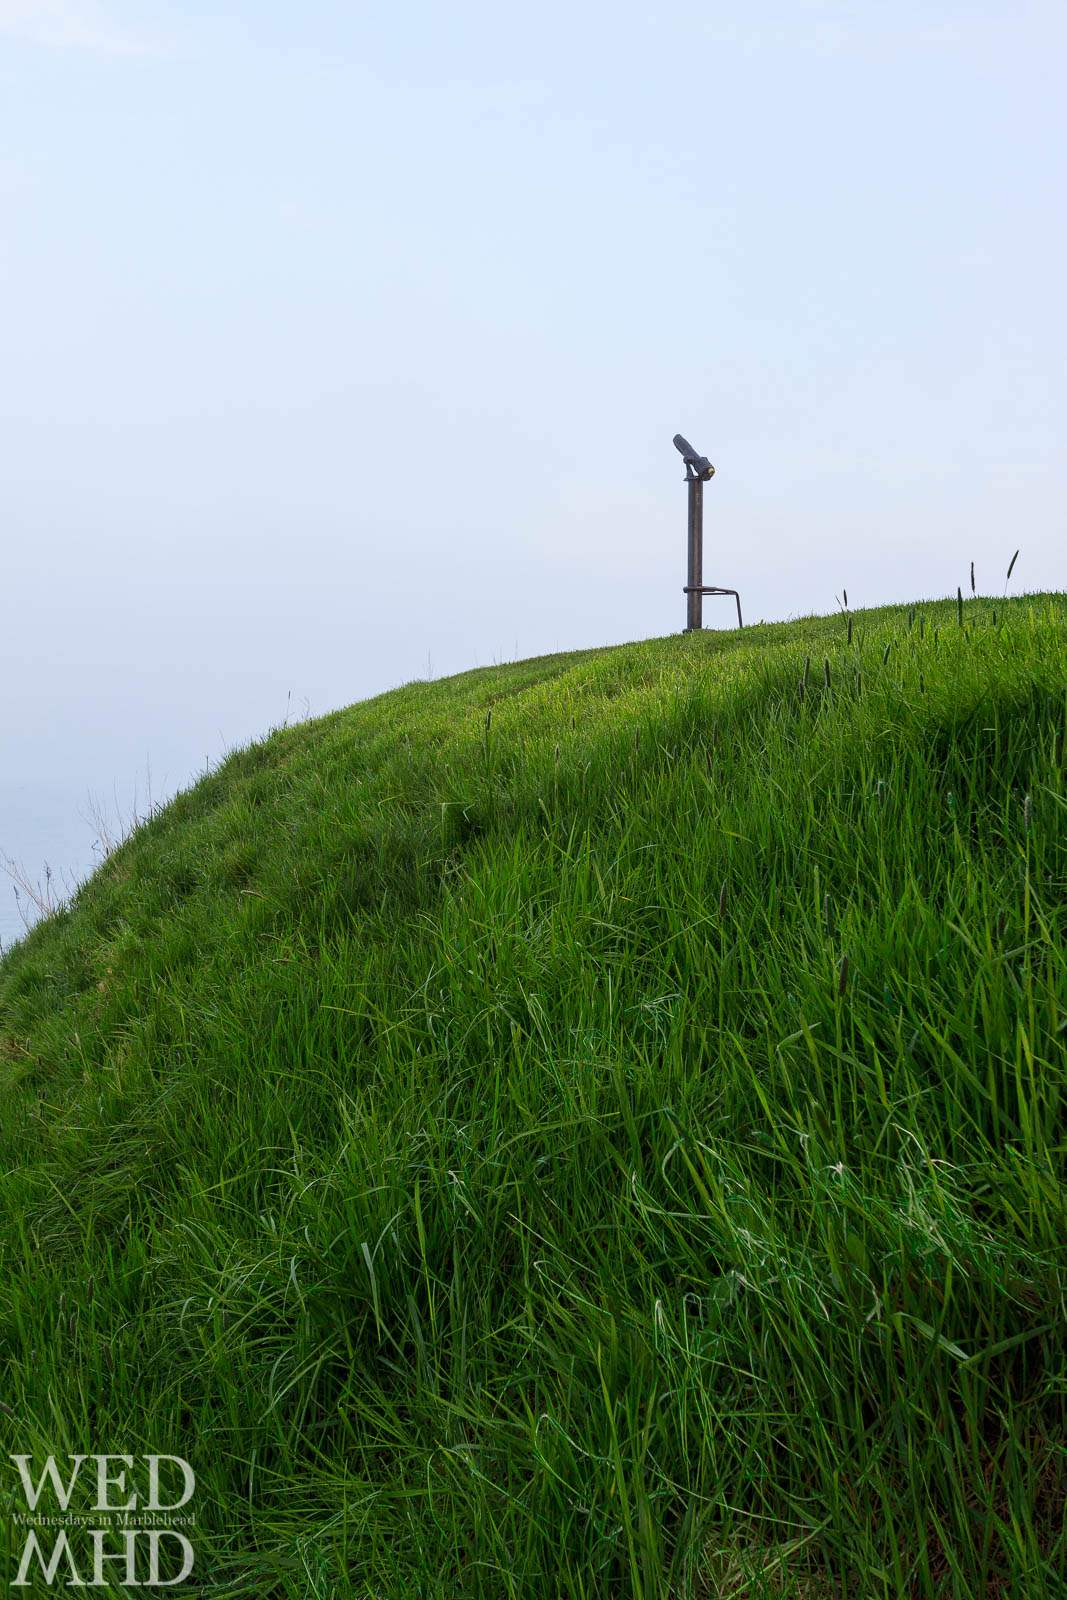 The Grassy Hill at Fort Sewall